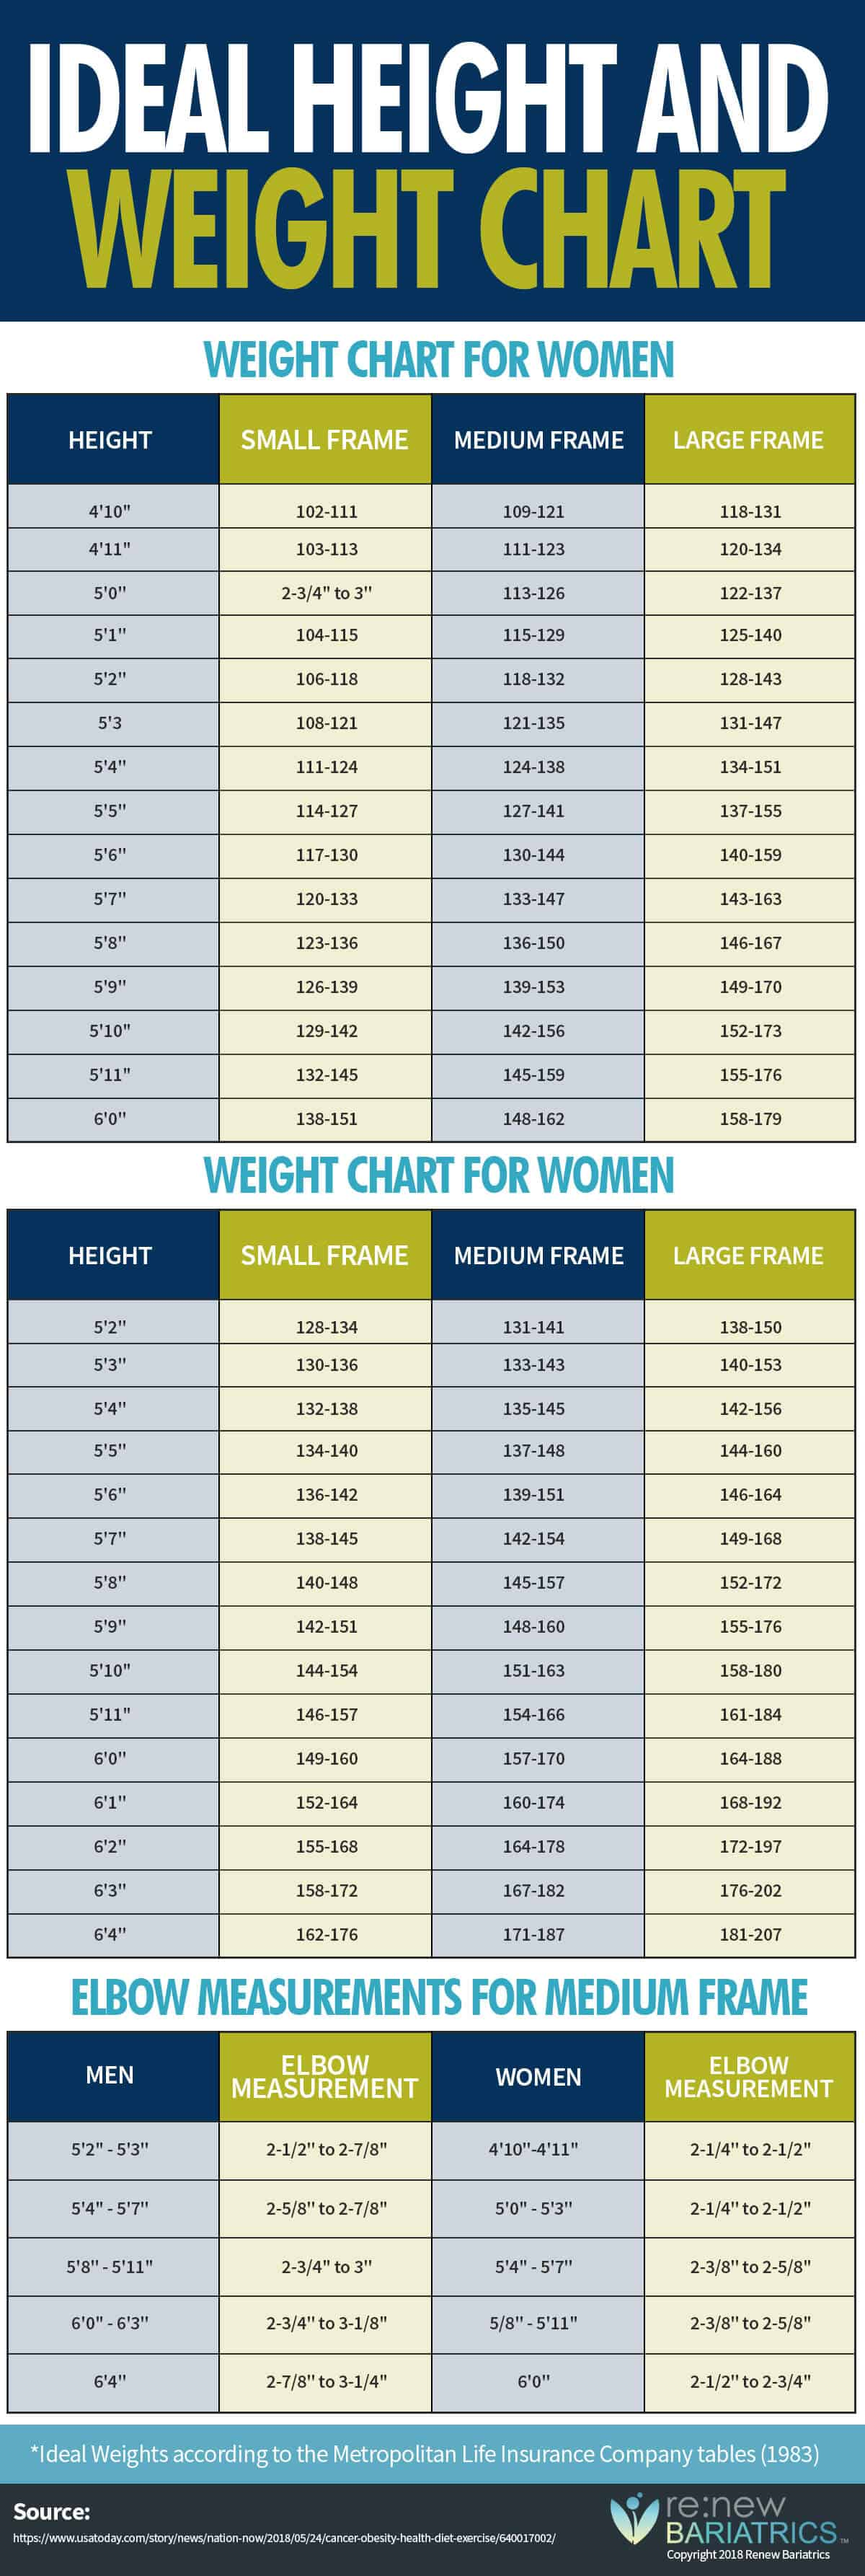 Figuring Used For Ideal Height Weight Charts